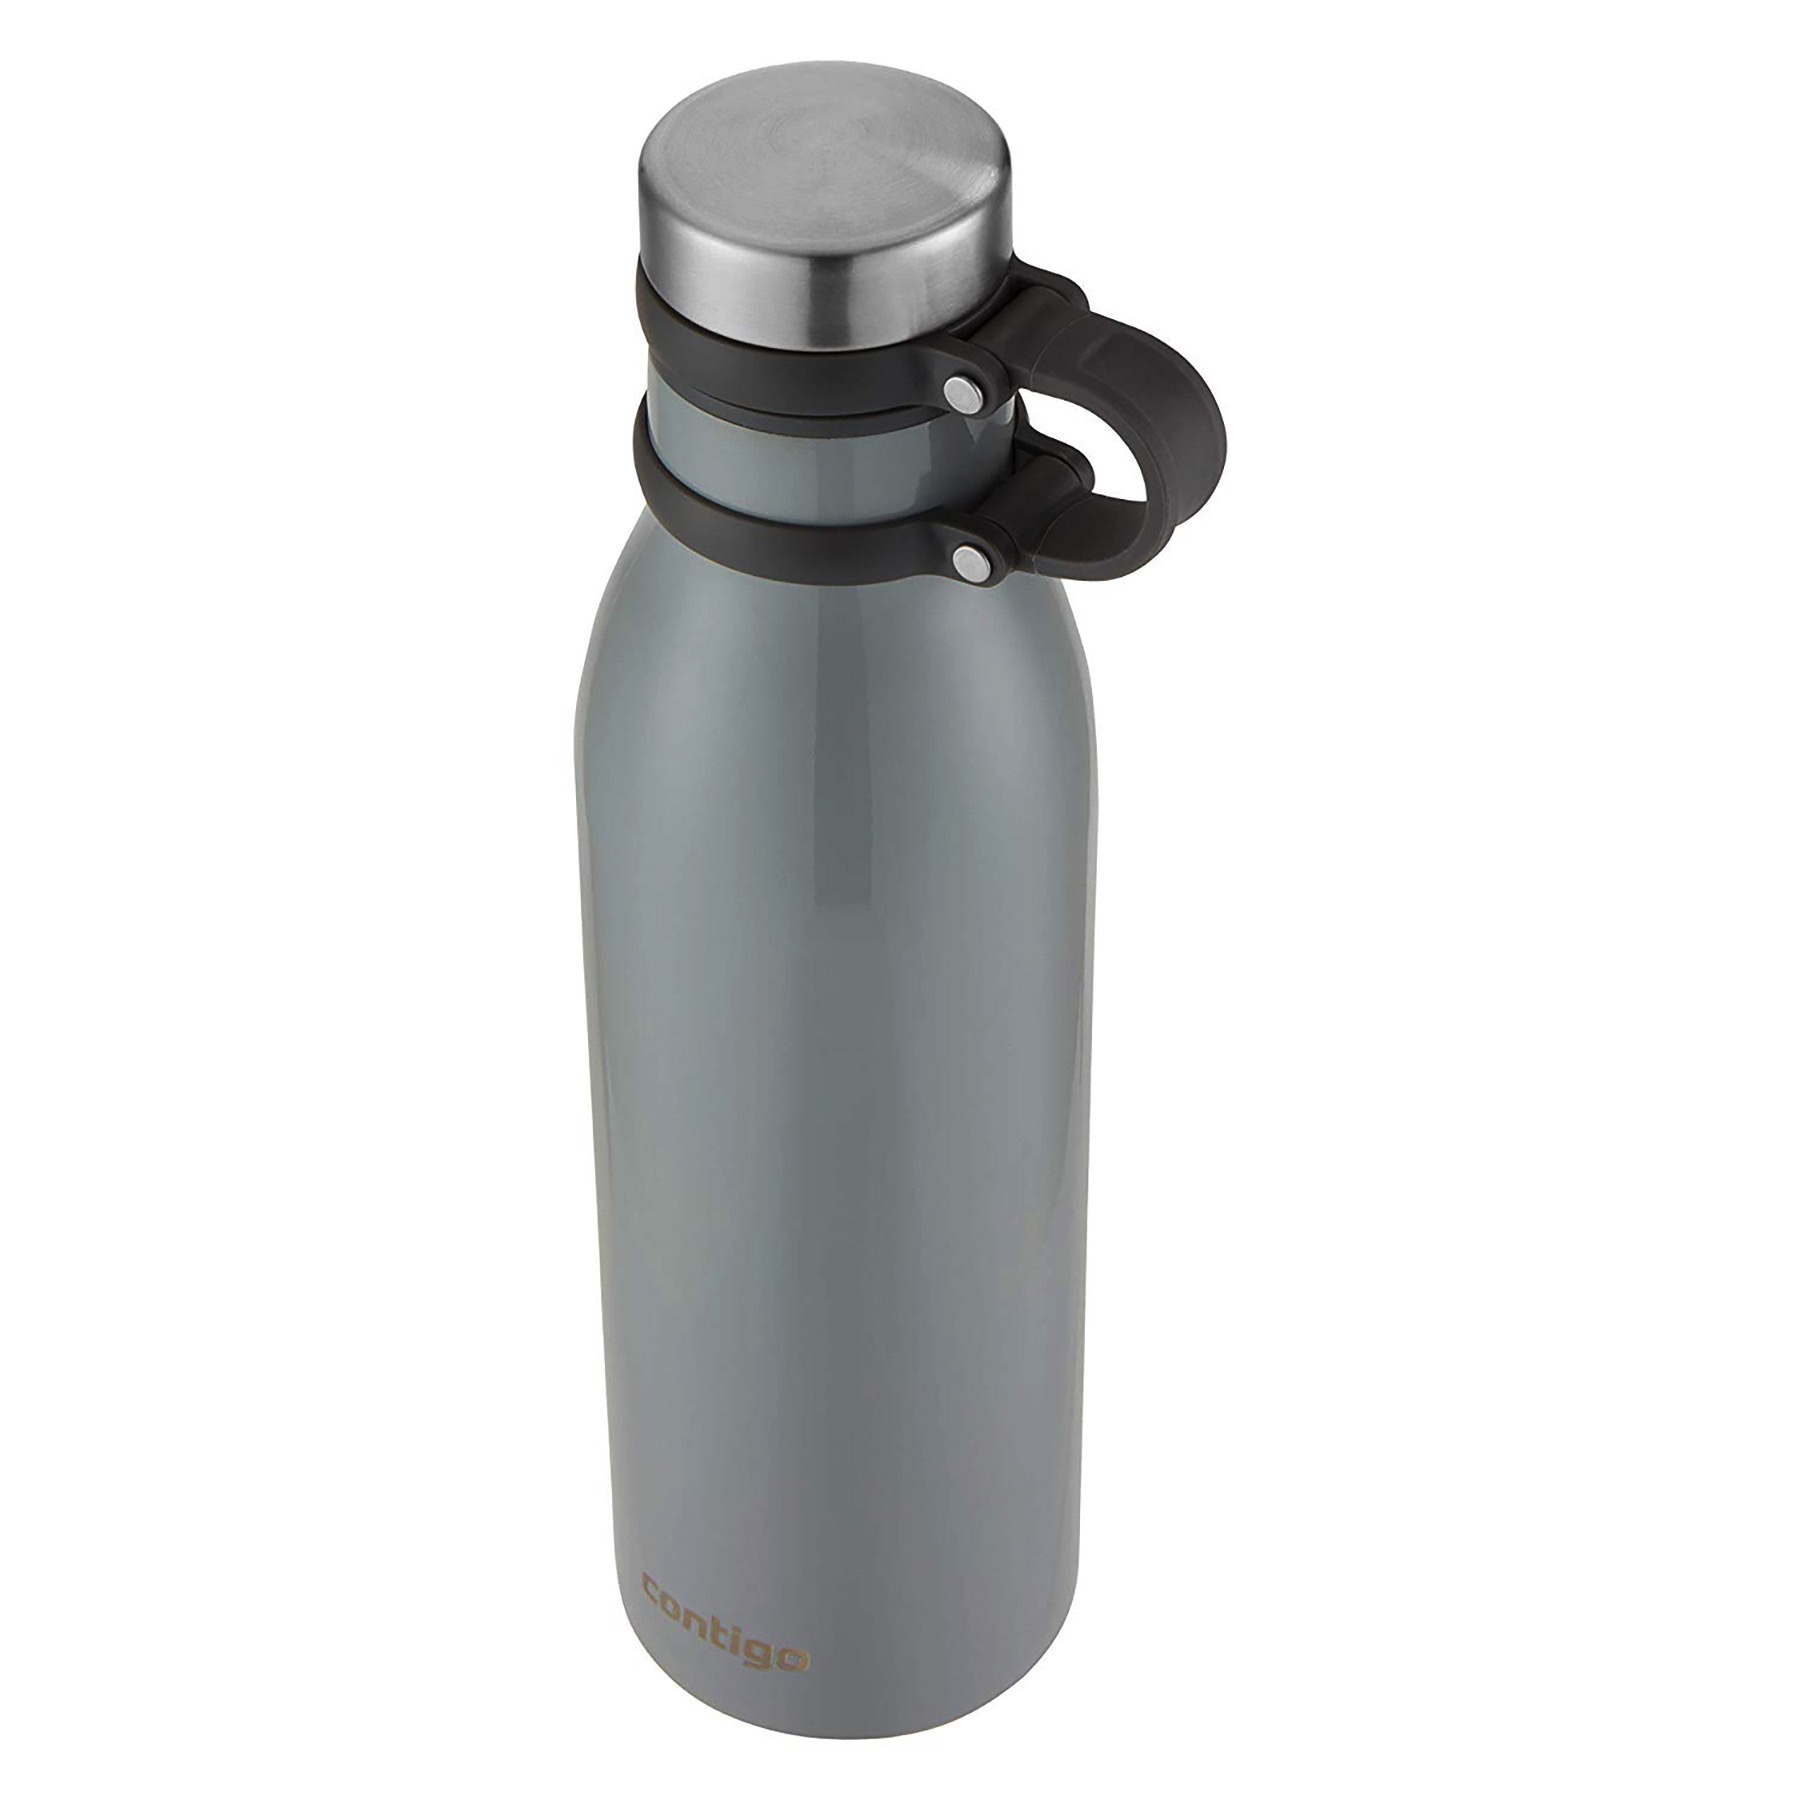 d0284b7ffe Details about Contigo Couture THERMALOCK 20oz Insulated Stainless Water  Bottle Metallic Bass